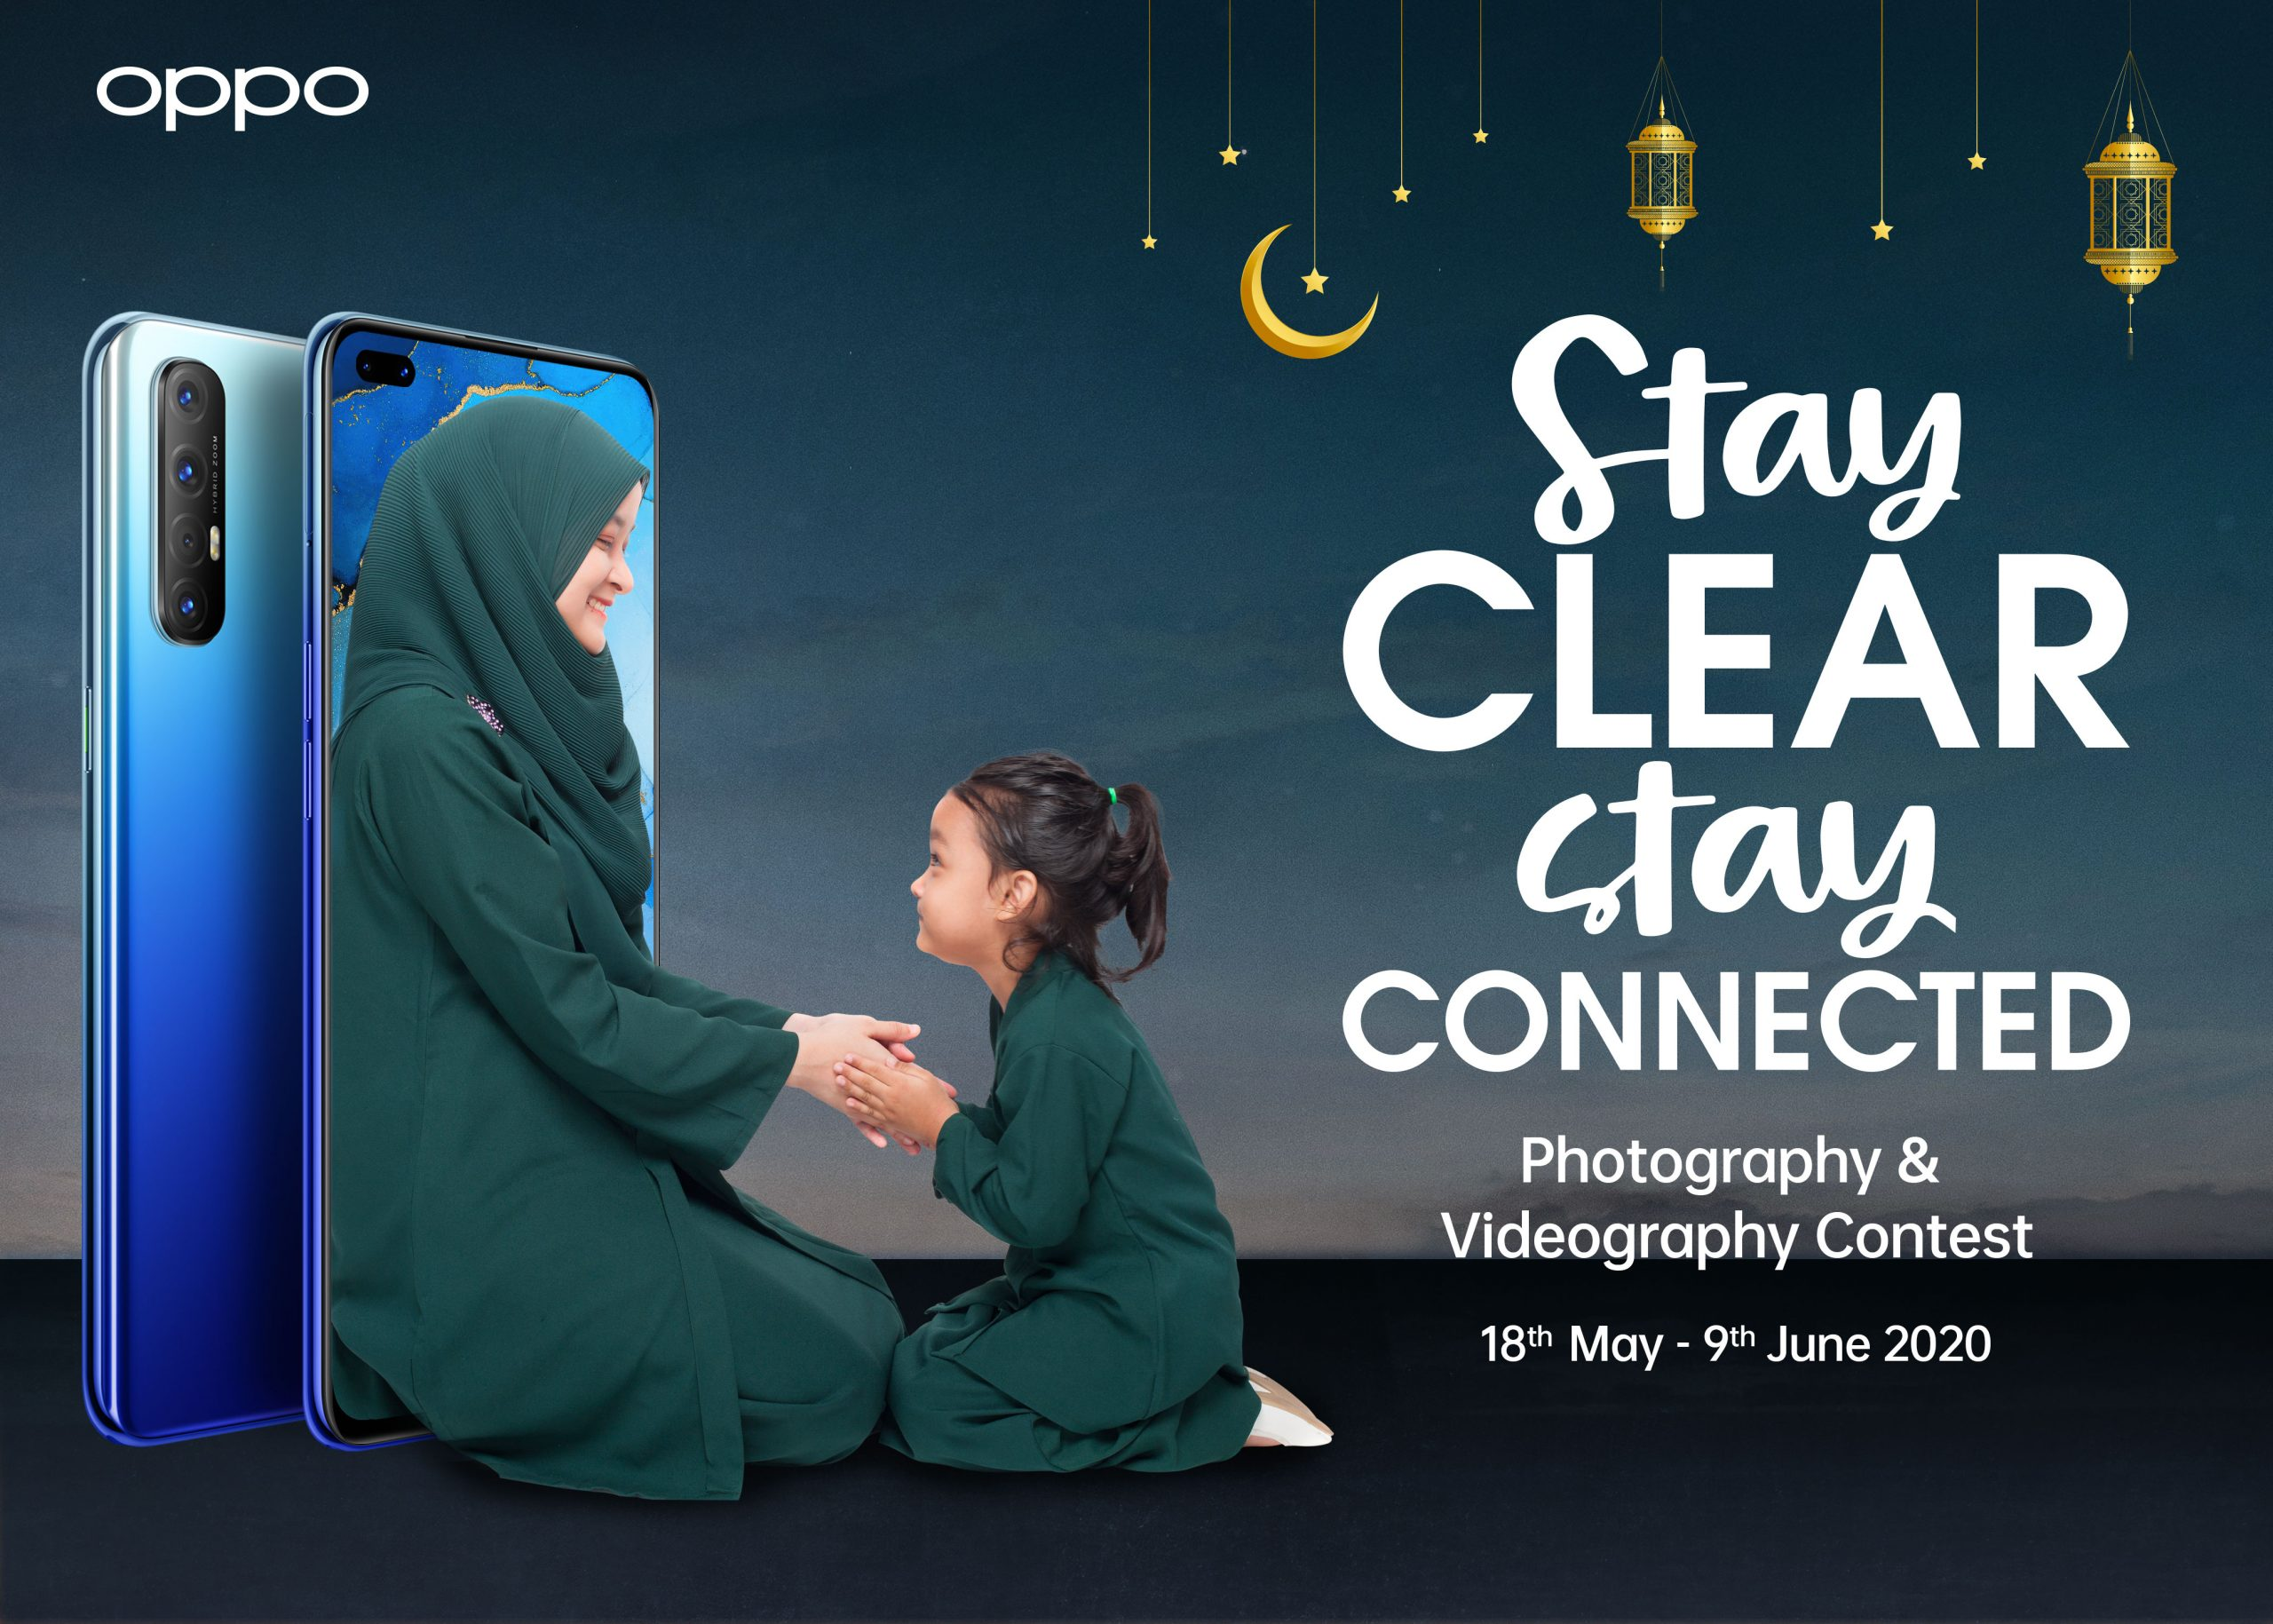 OPPO Stay Clear Stay Connected